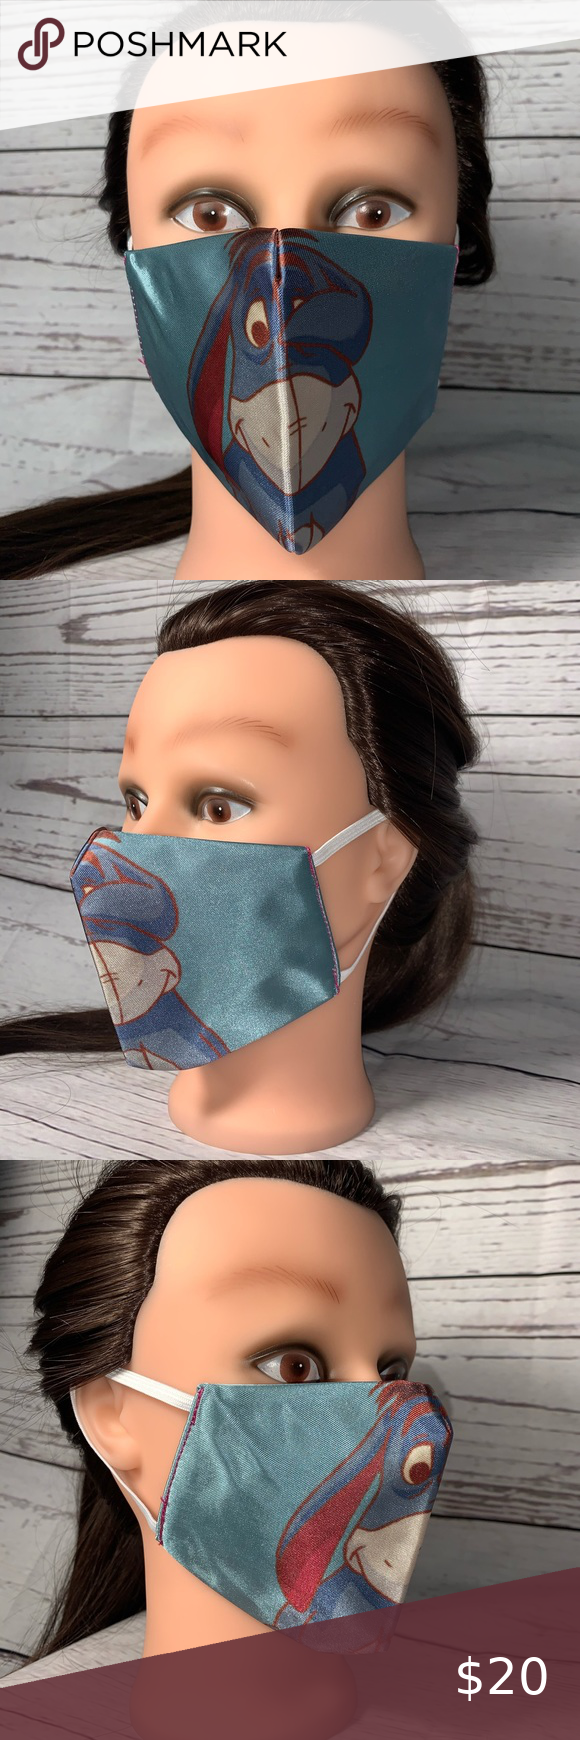 Disney Eeyore Face Mask Reusable And Washable Custom Design Face Mask New The O In 2020 Viren